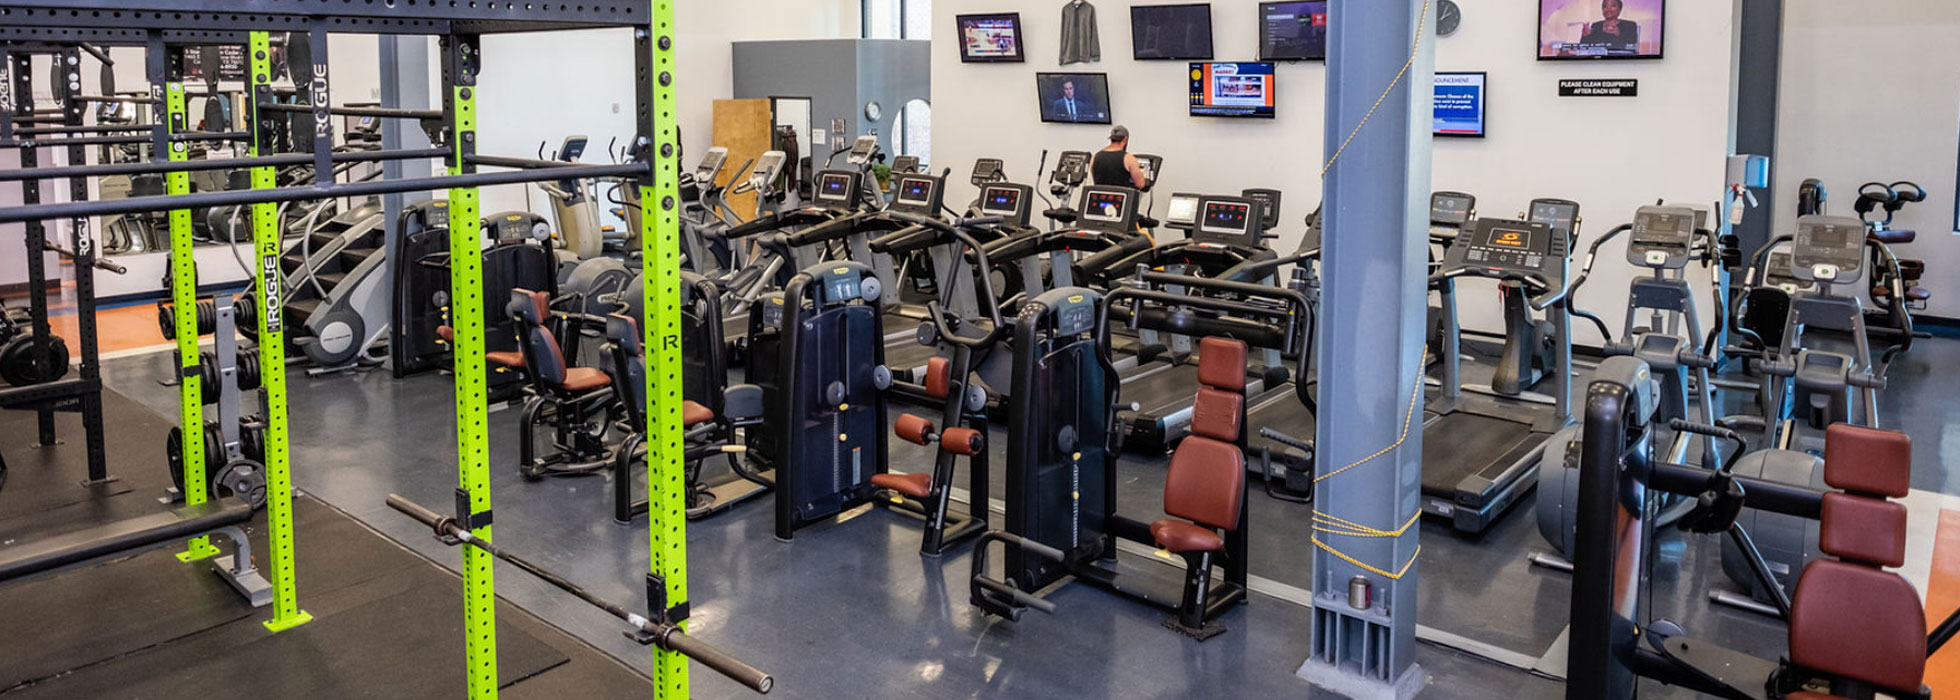 A Gym In Cedar Park TX That Can Help With Weight loss & Dieting